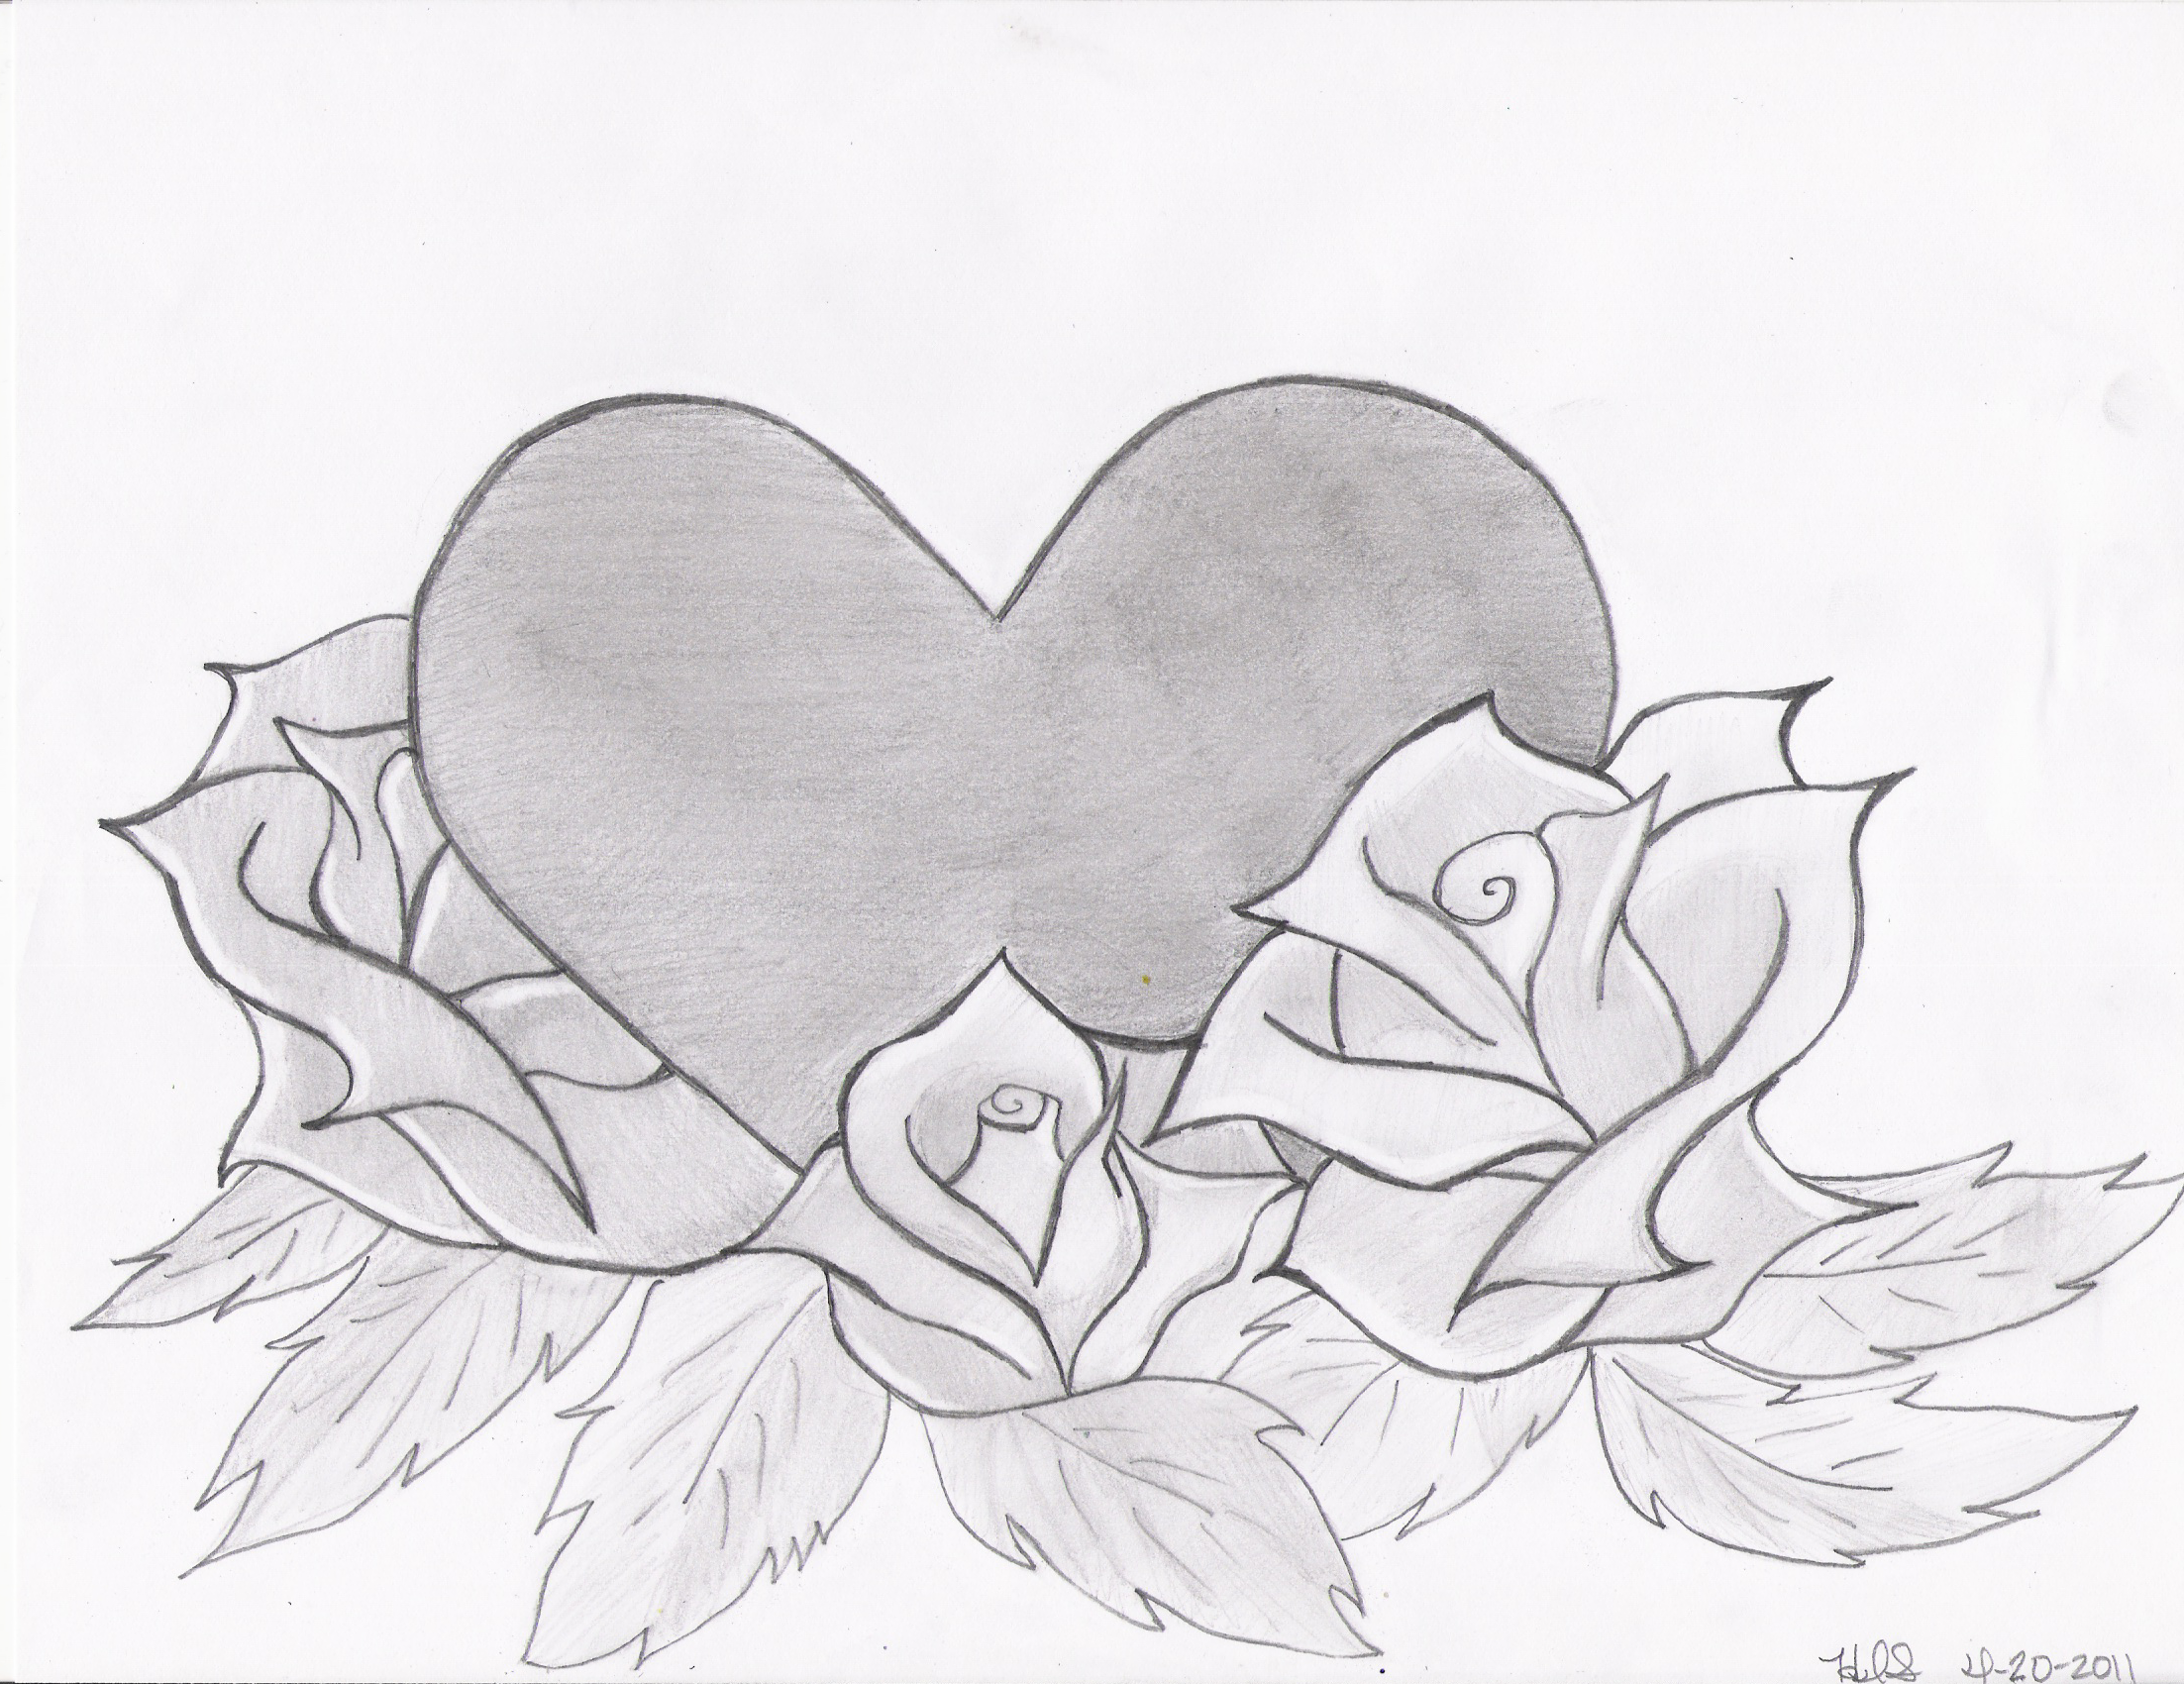 Drawings Of Roses And Hearts  Heart And Roses Drawing  Crochetamommy ©  2013  Apr